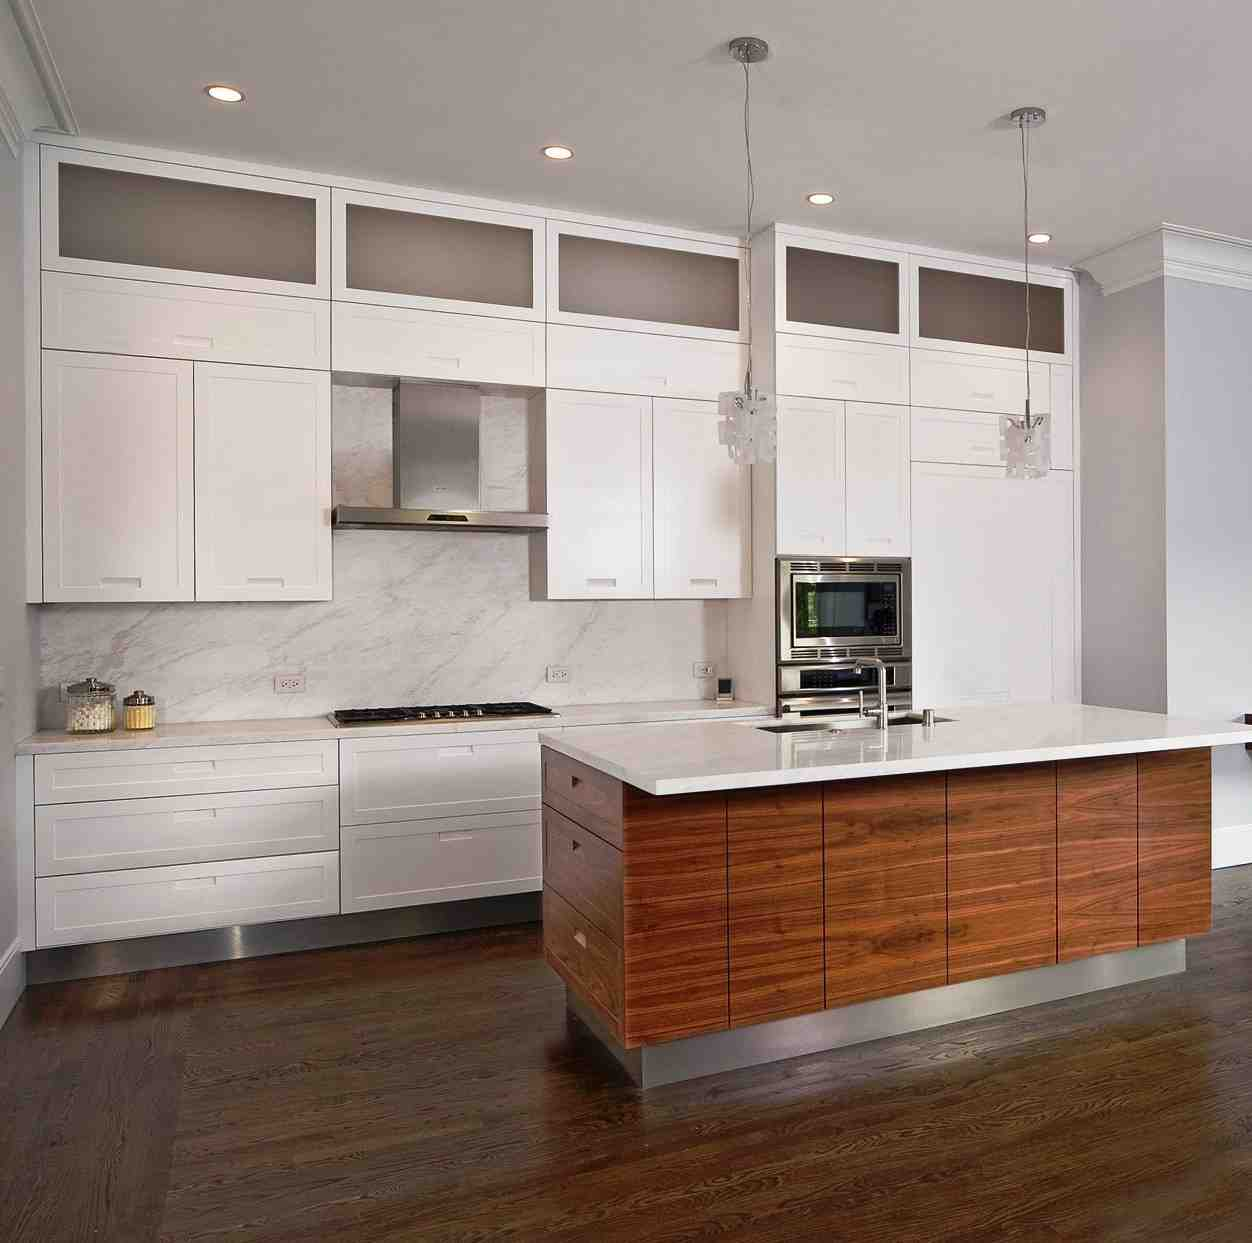 Rta Frameless Kitchen Cabinets: Frameless Rta Cabinets